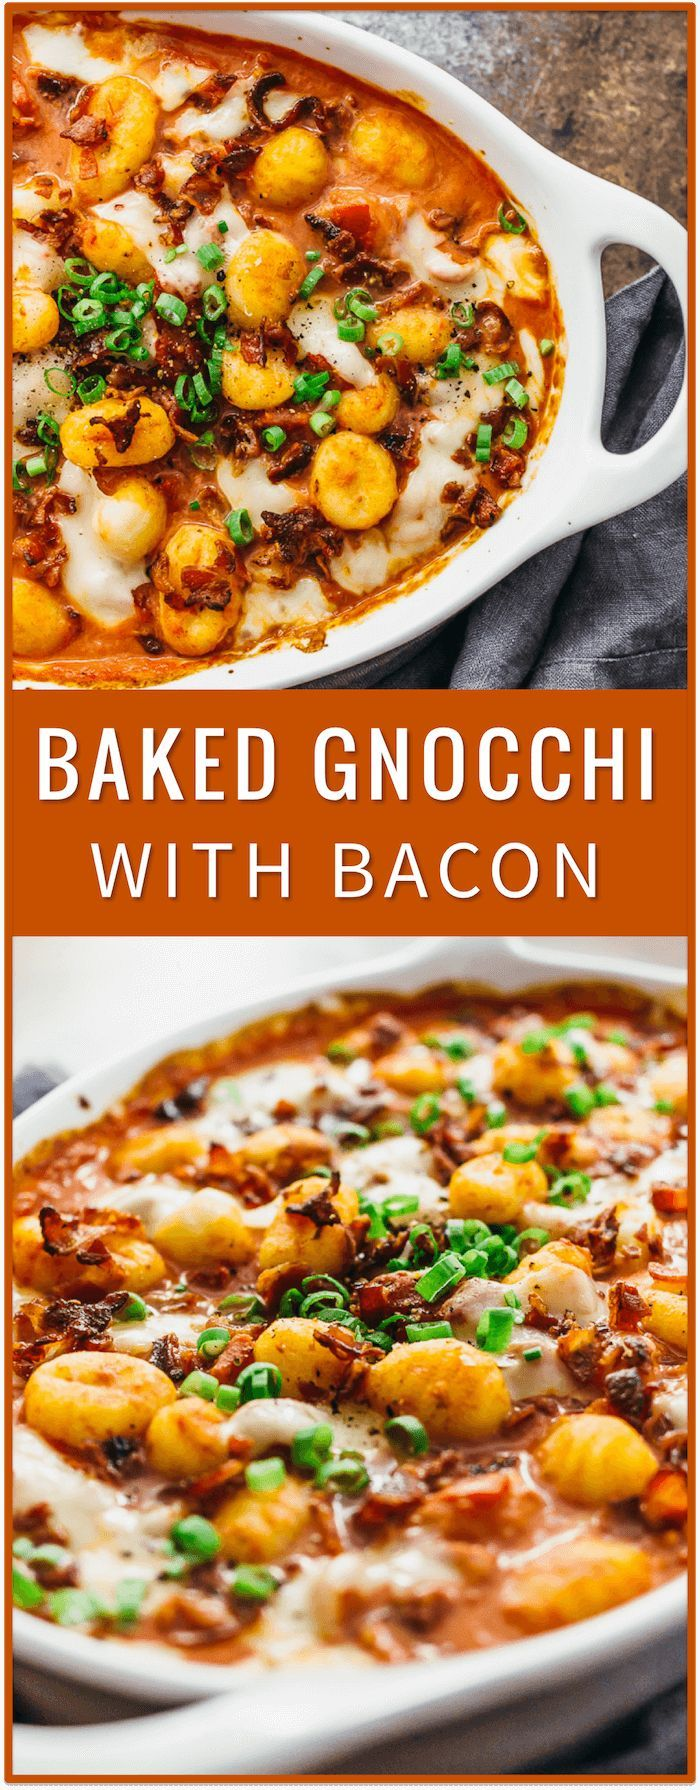 Baked gnocchi pasta recipe with bacon, sun-dried tomatoes, mozzarella cheese, oven baked gnocchi, baked gnocchi casserole, with chicken, with cheese, healthy, with kale, butter sauce, mac and cheese,  (Italian Recipes With Chicken)